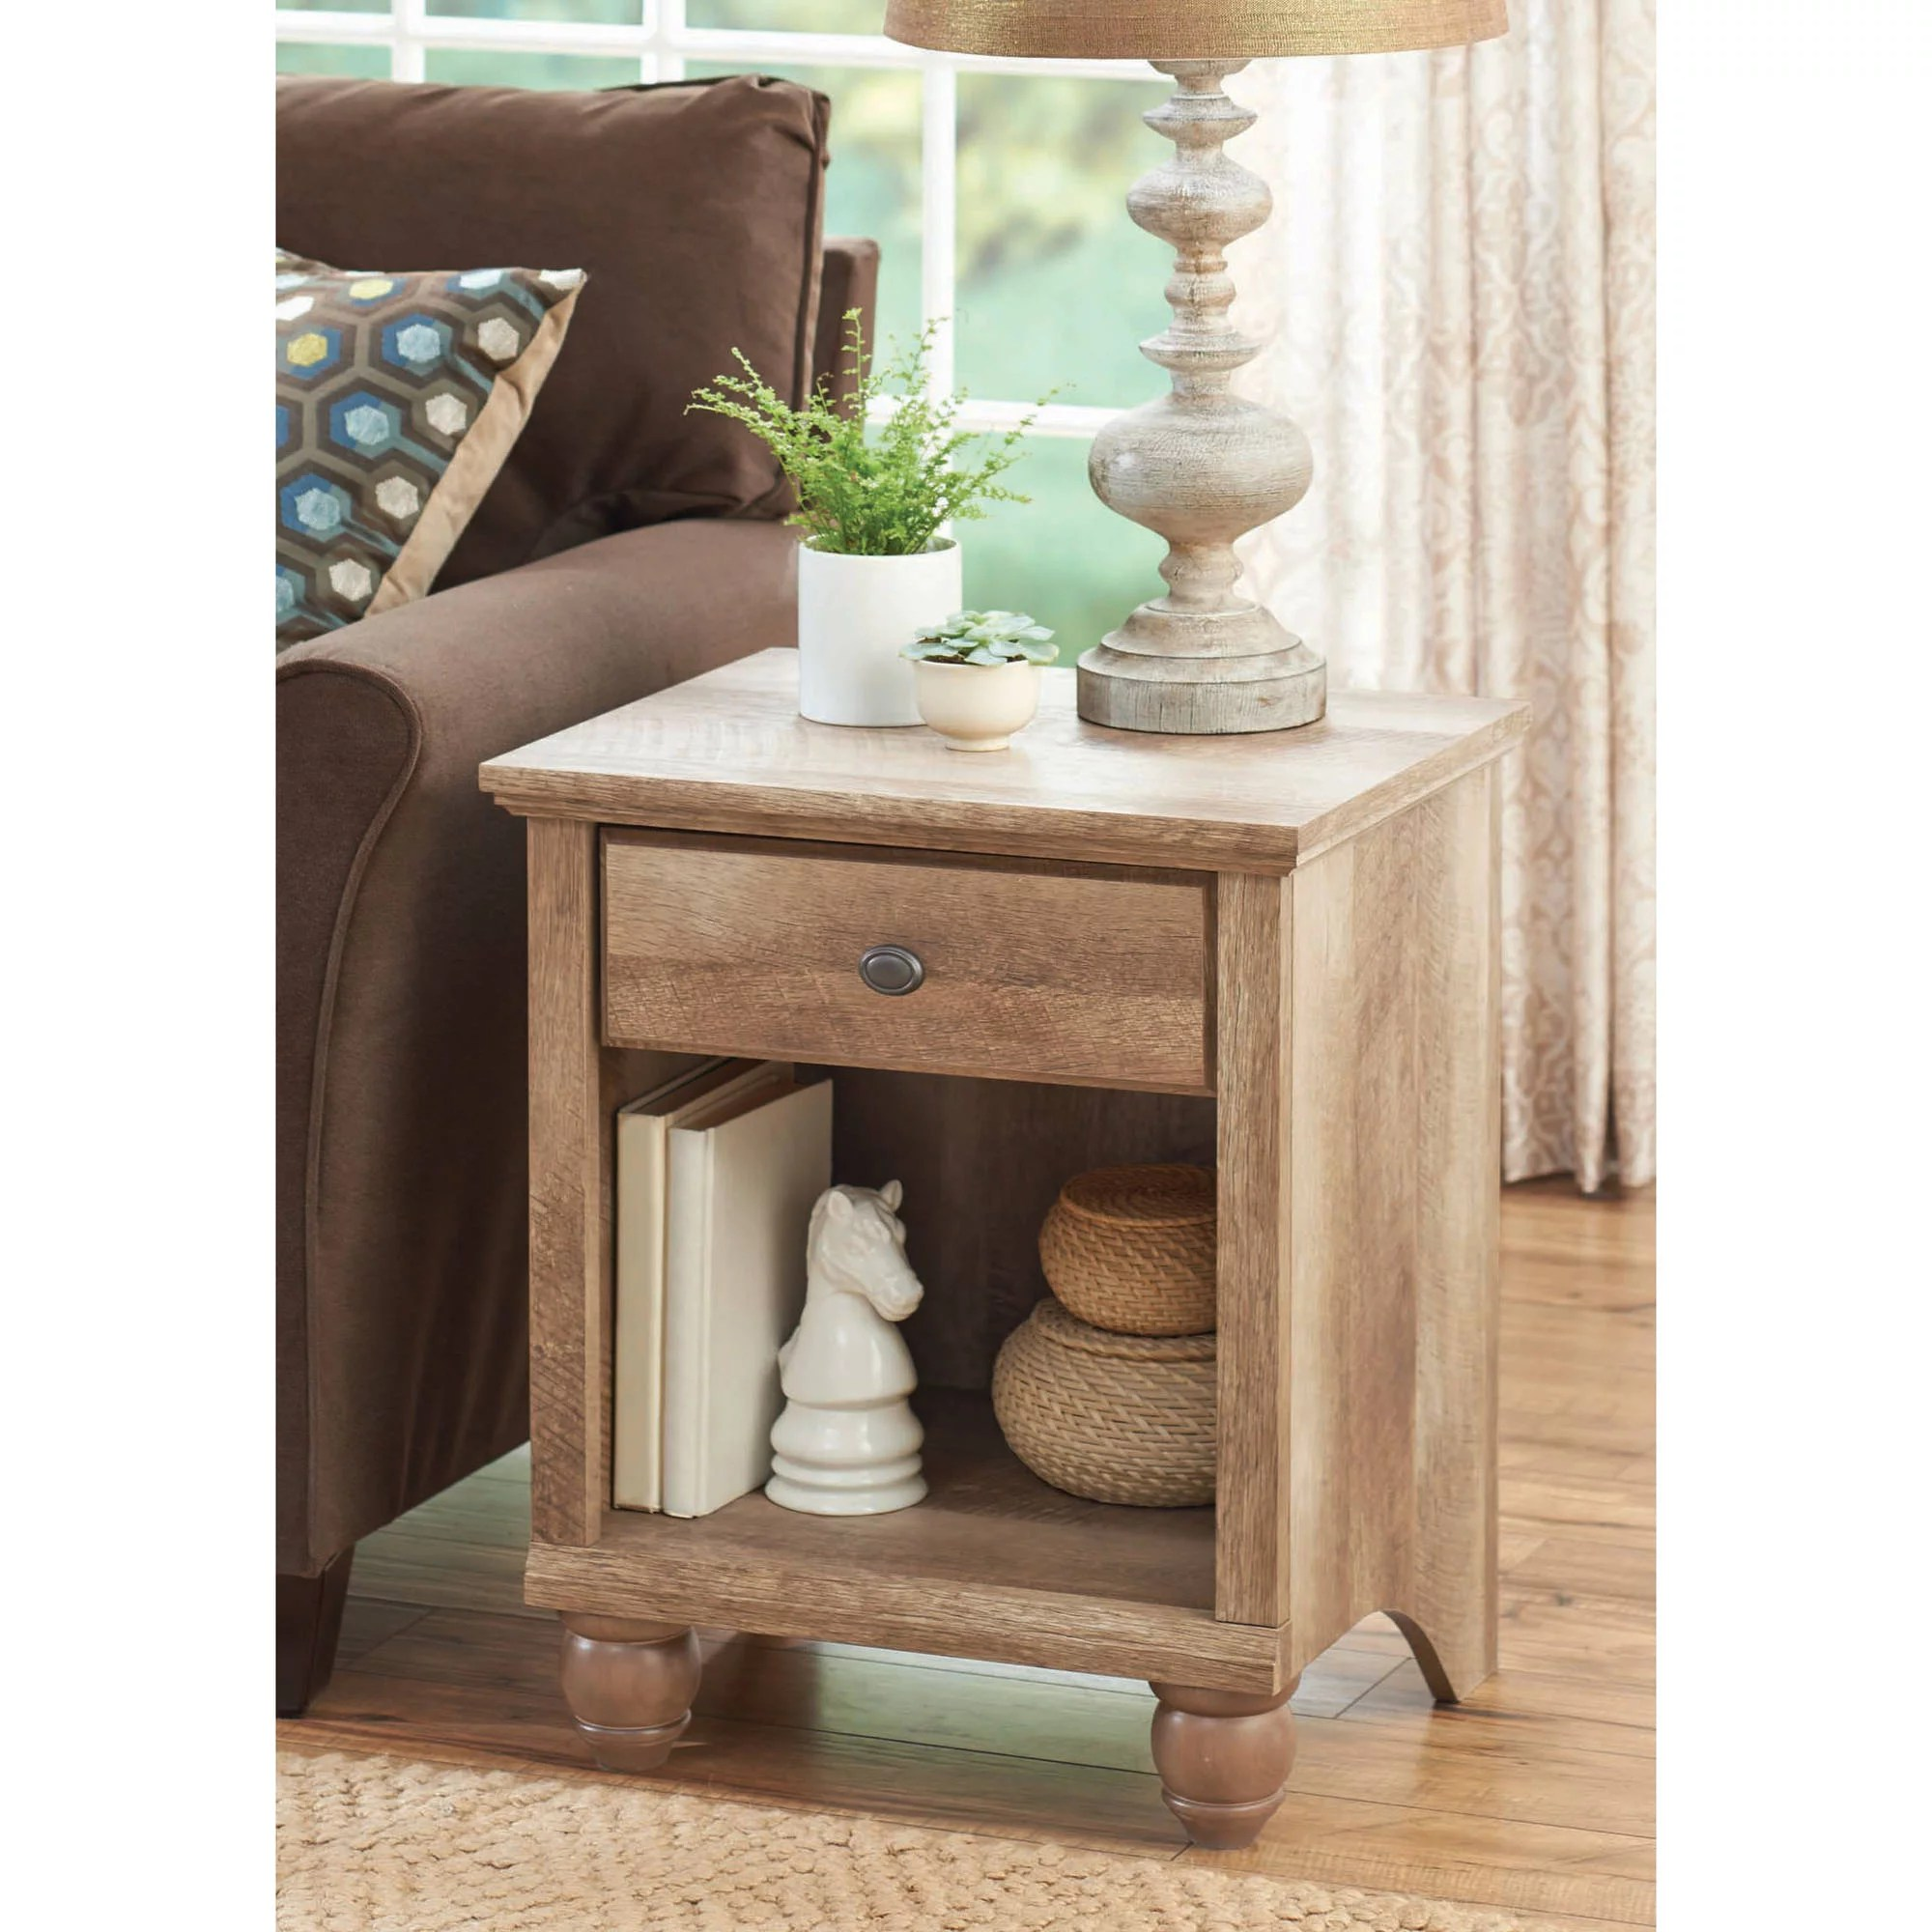 End Table For Living Room Better Homes Gardens Crossmill Accent Table Weathered Finish